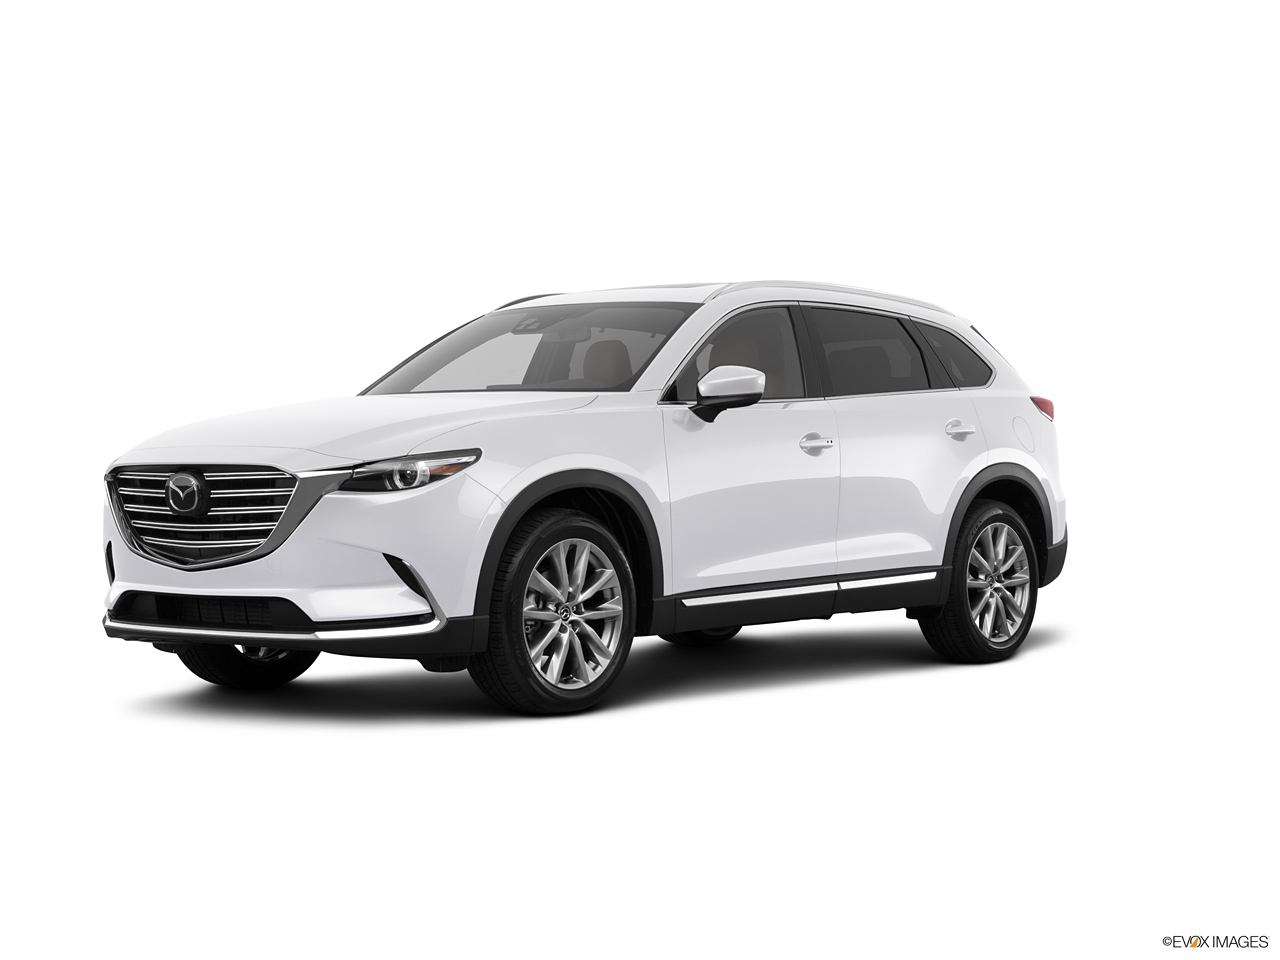 mazda cx 9 2016 3 7l gtx in uae new car prices specs reviews photos yallamotor. Black Bedroom Furniture Sets. Home Design Ideas